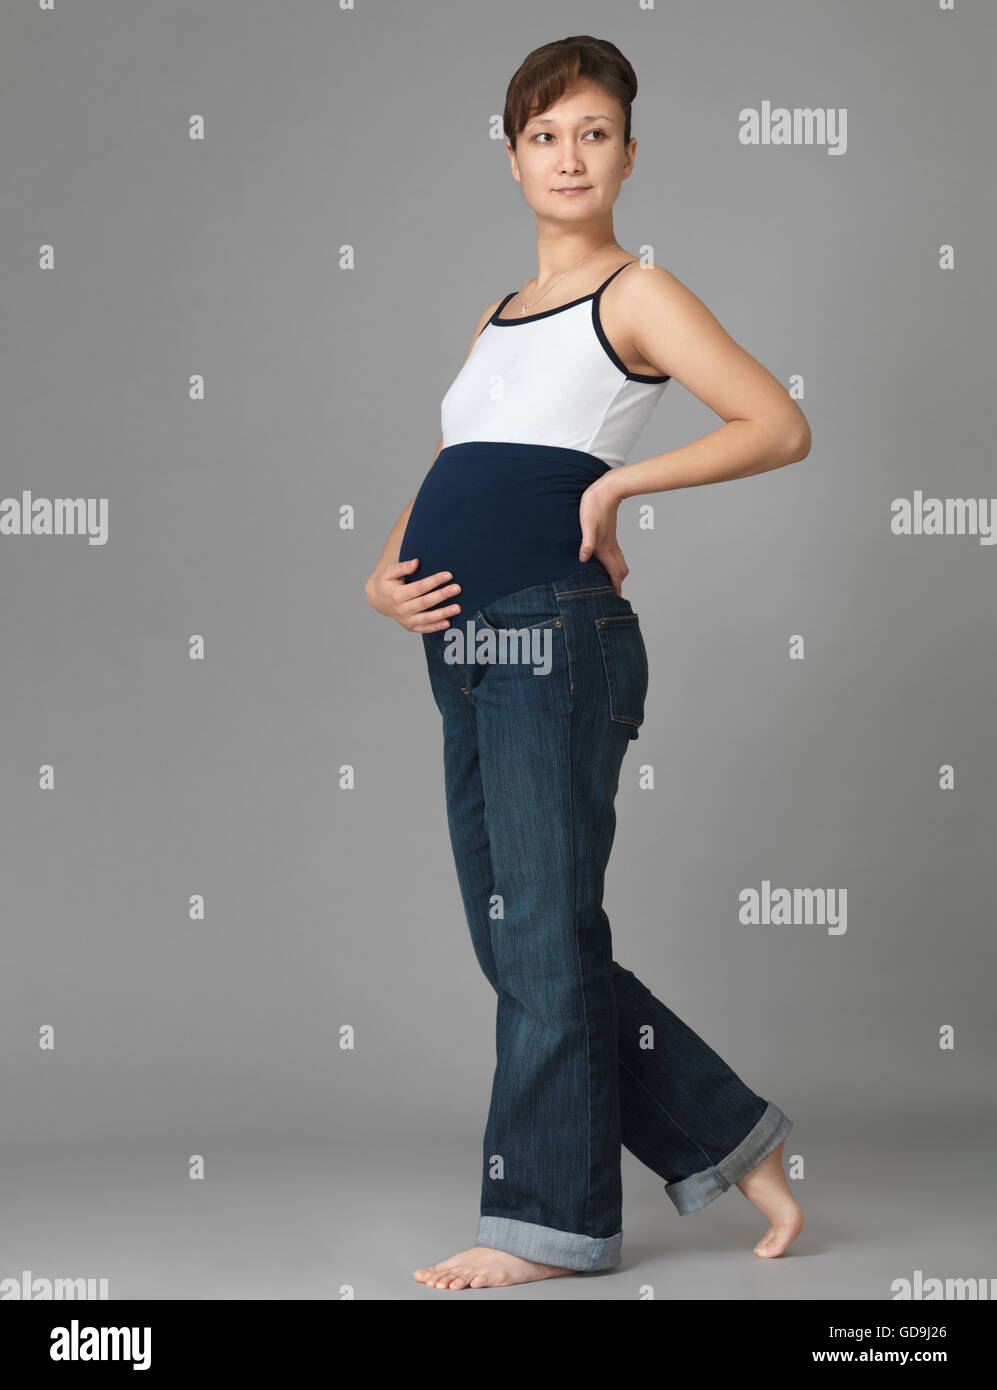 Pregnant young woman wearing maternity jeans with a stretch band around her belly - Stock Image